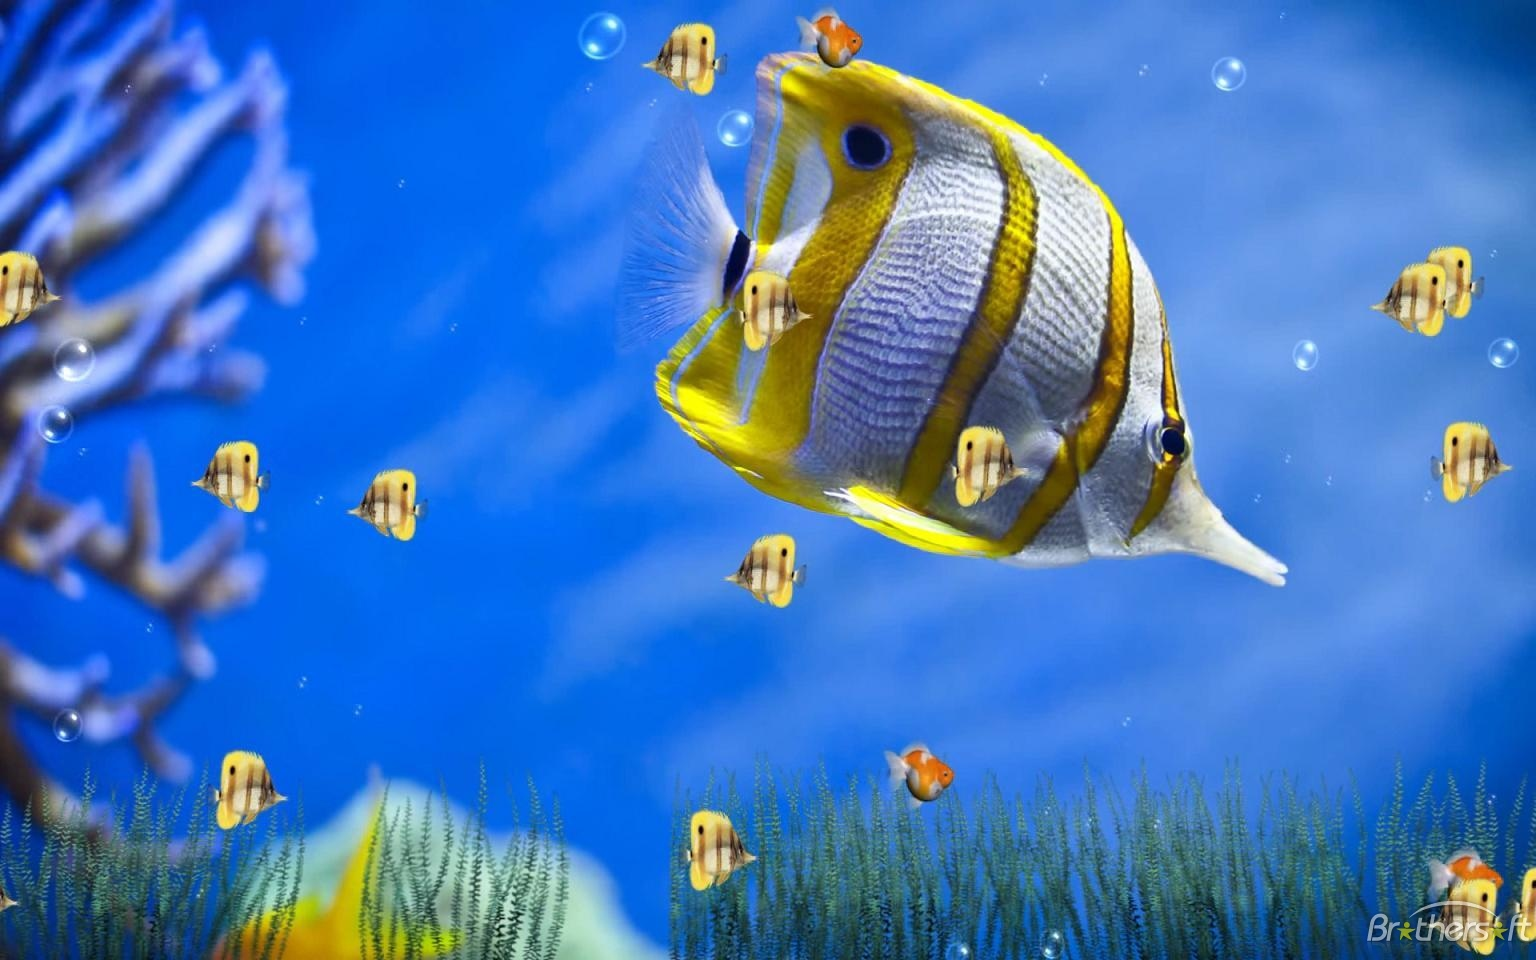 Download Marine Life Aquarium Animated Wallpaper Marine Life 1536x960